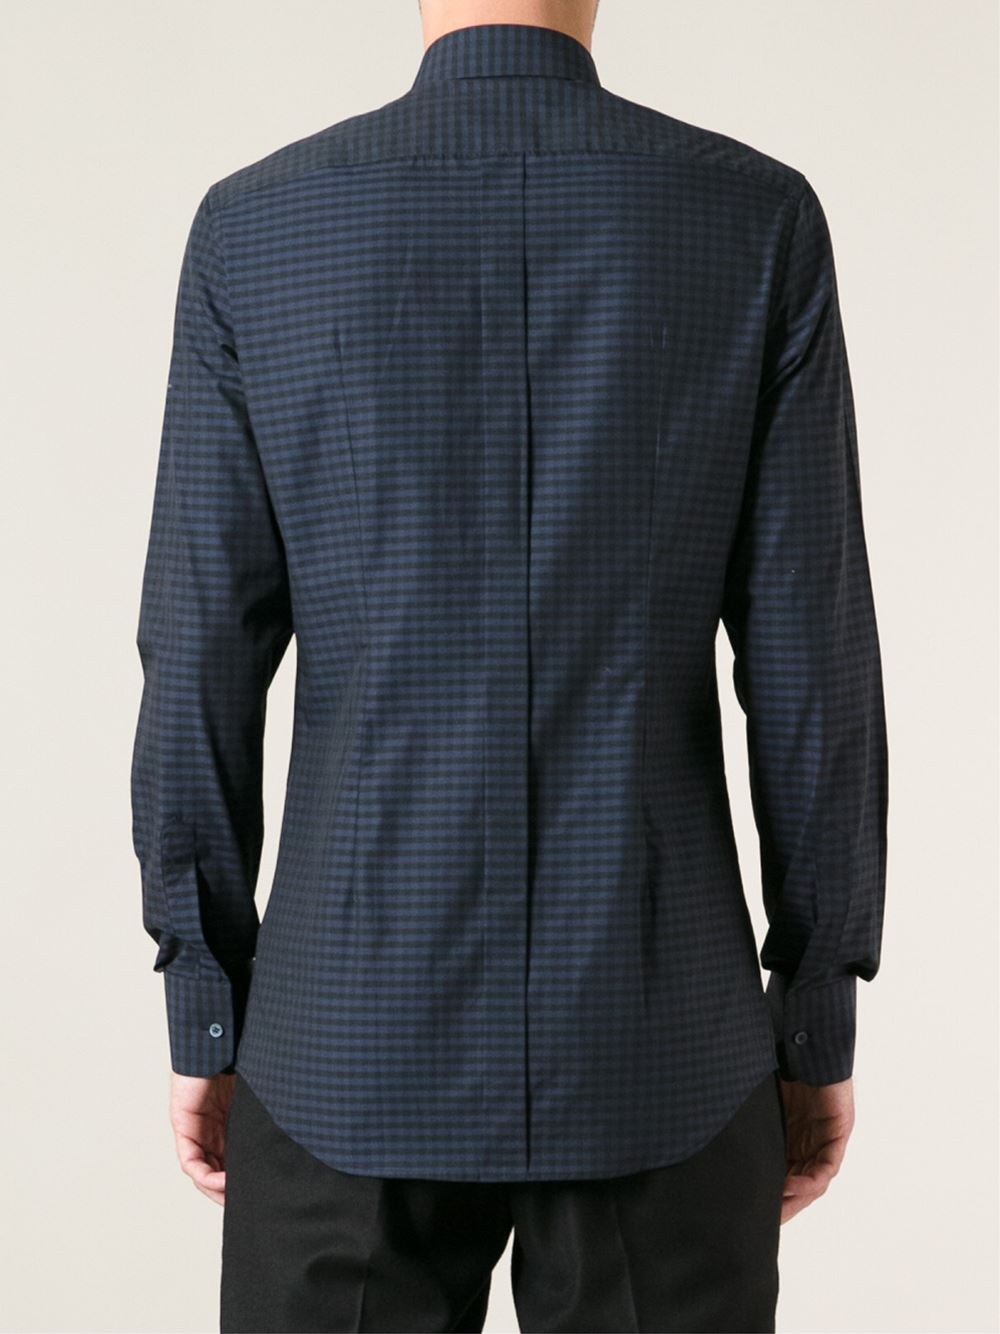 Dolce & Gabbana Checked Shirt in Black for Men